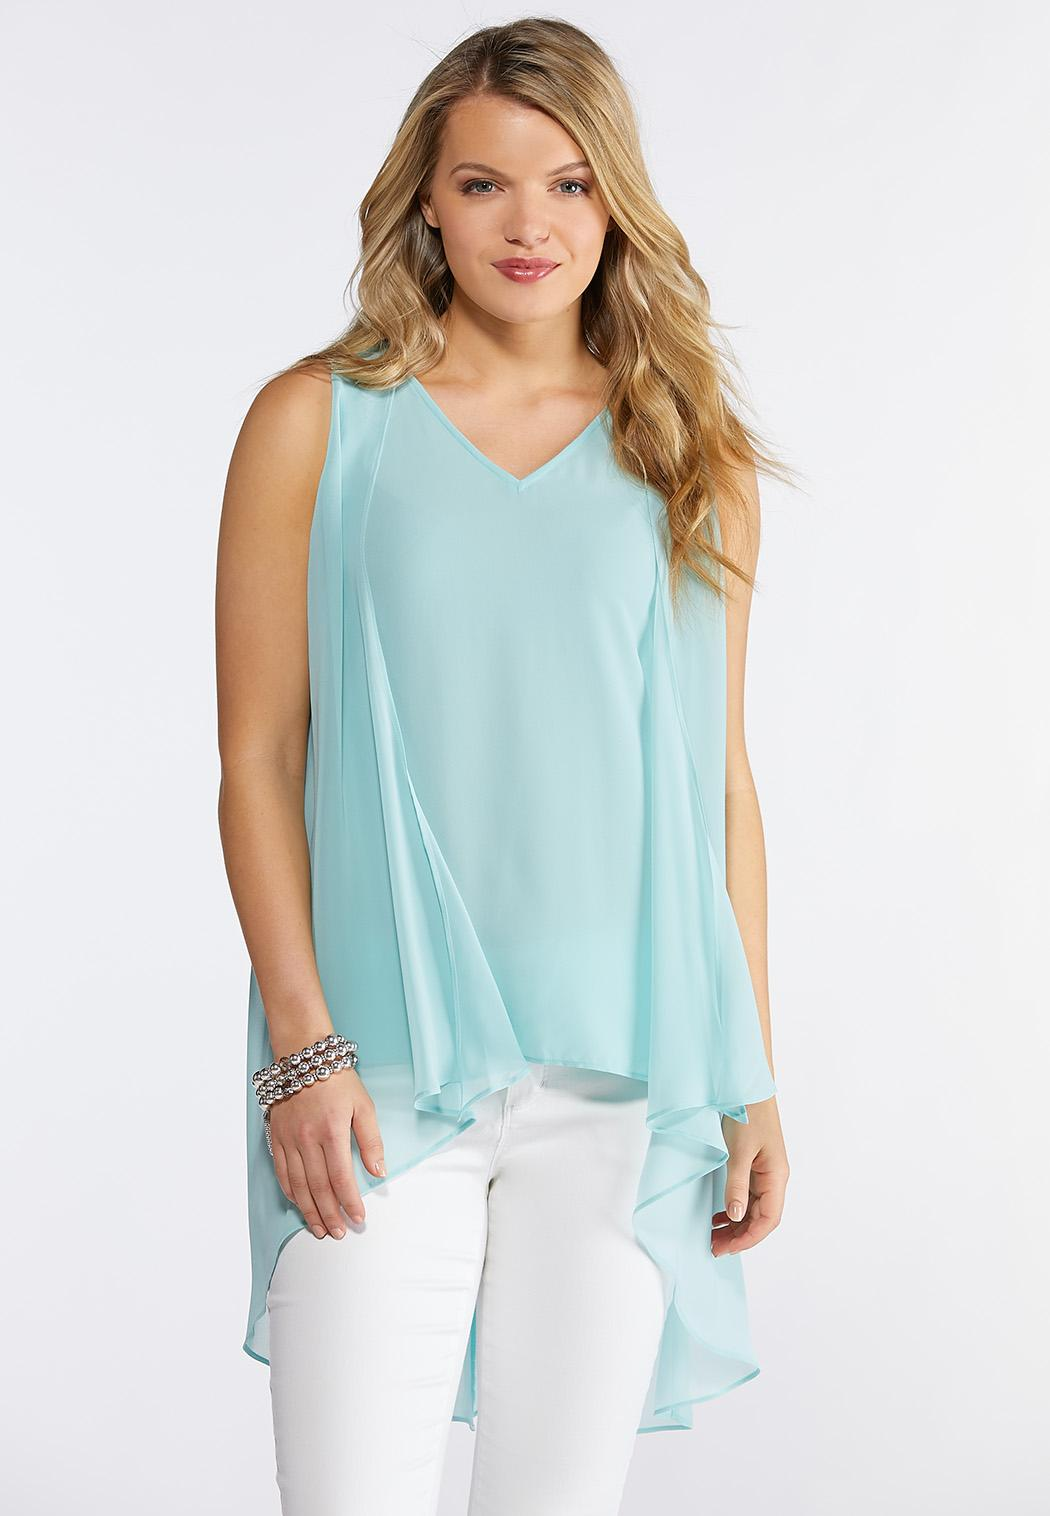 2bbb779c444 Plus Size High-Low Layered Tank Tops Cato Fashions